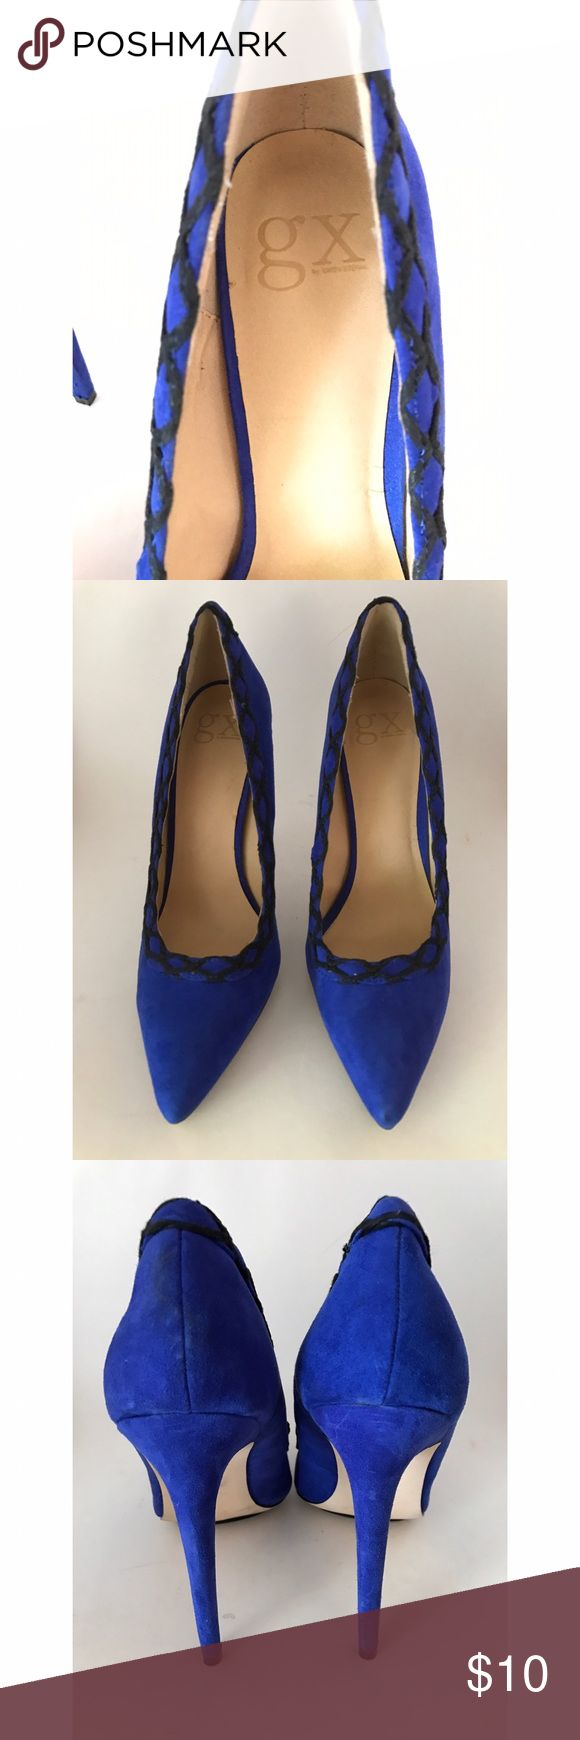 Gwen Stefani- GX- Black/Blue Pump- size 10 These are so cool! Gwen Stefani heels in good condition- size 10 pump with black intricate detailing. GX by Gwen Stefani Shoes Heels